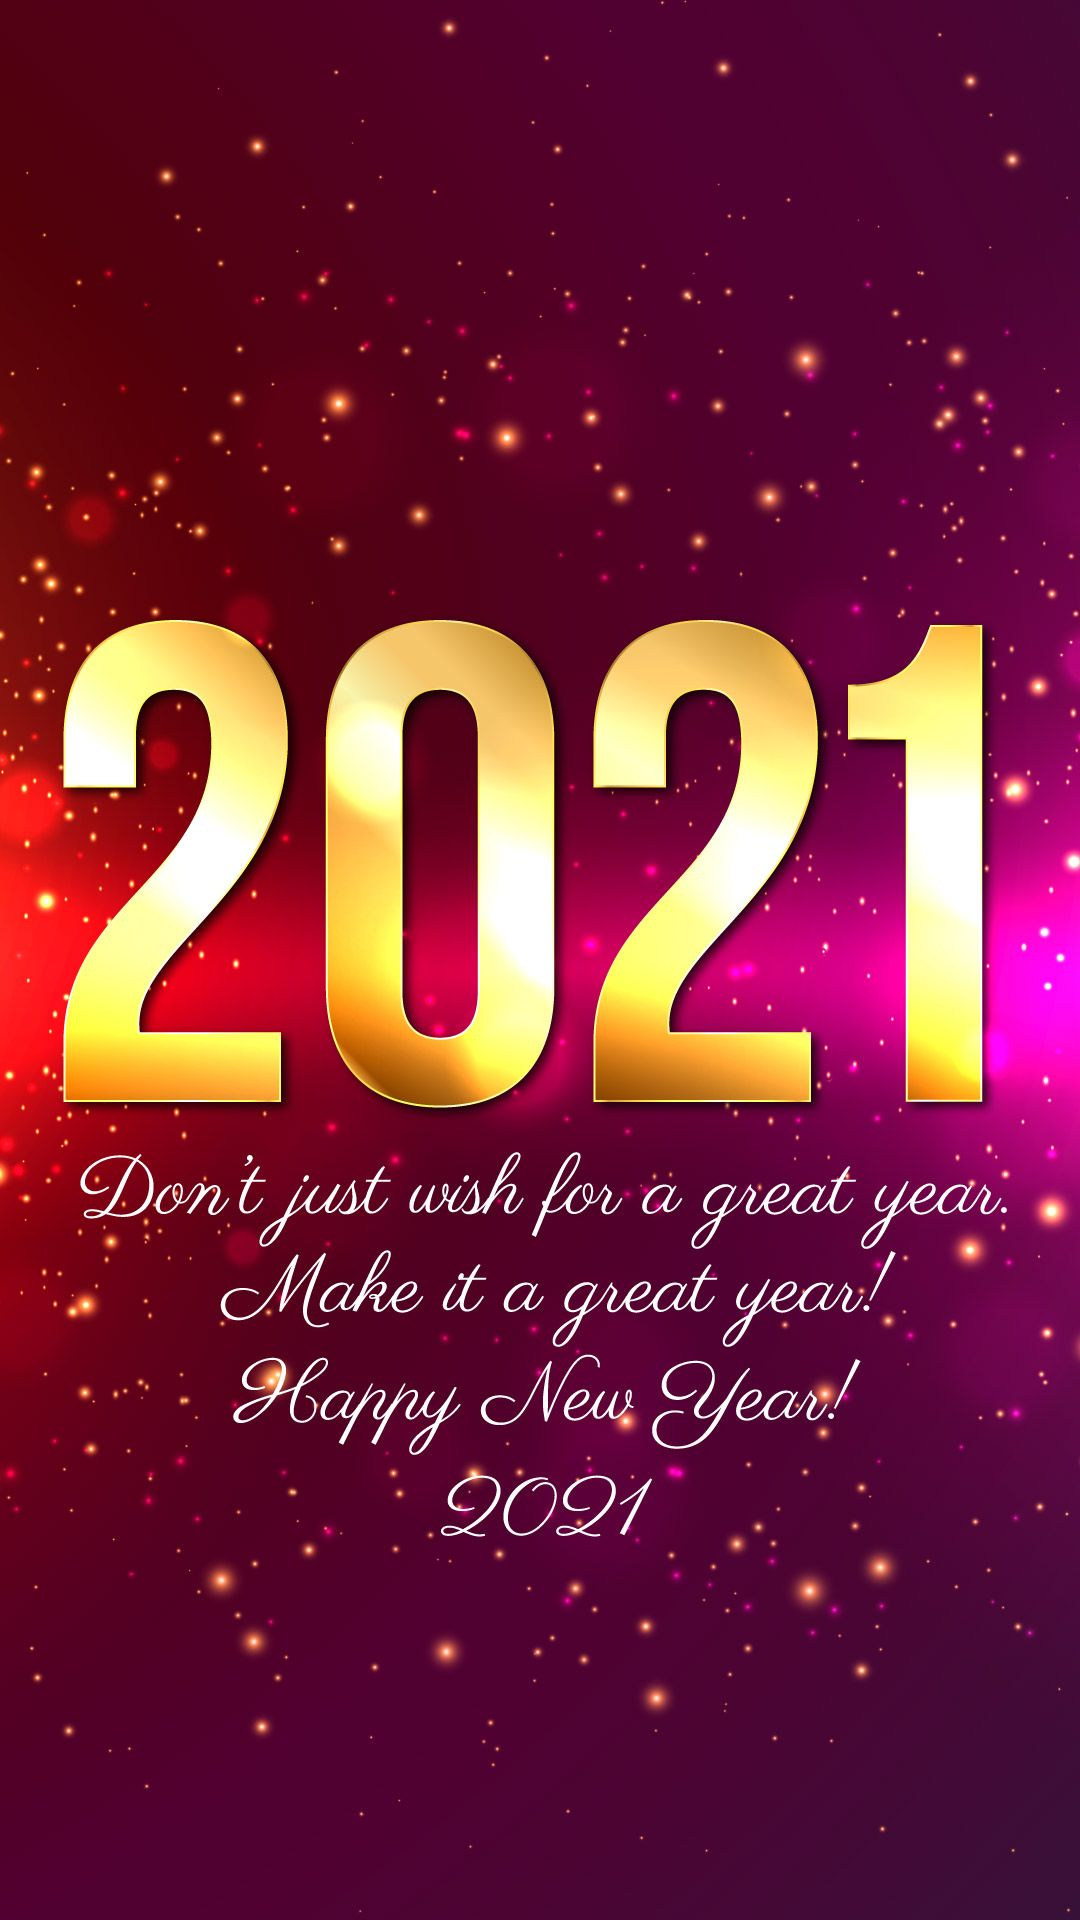 Happy New Year 2021 Wishes Images Photos With Latest Wallpaper Happy New Year Wishes Happy New Year Funny Happy New Year Quotes